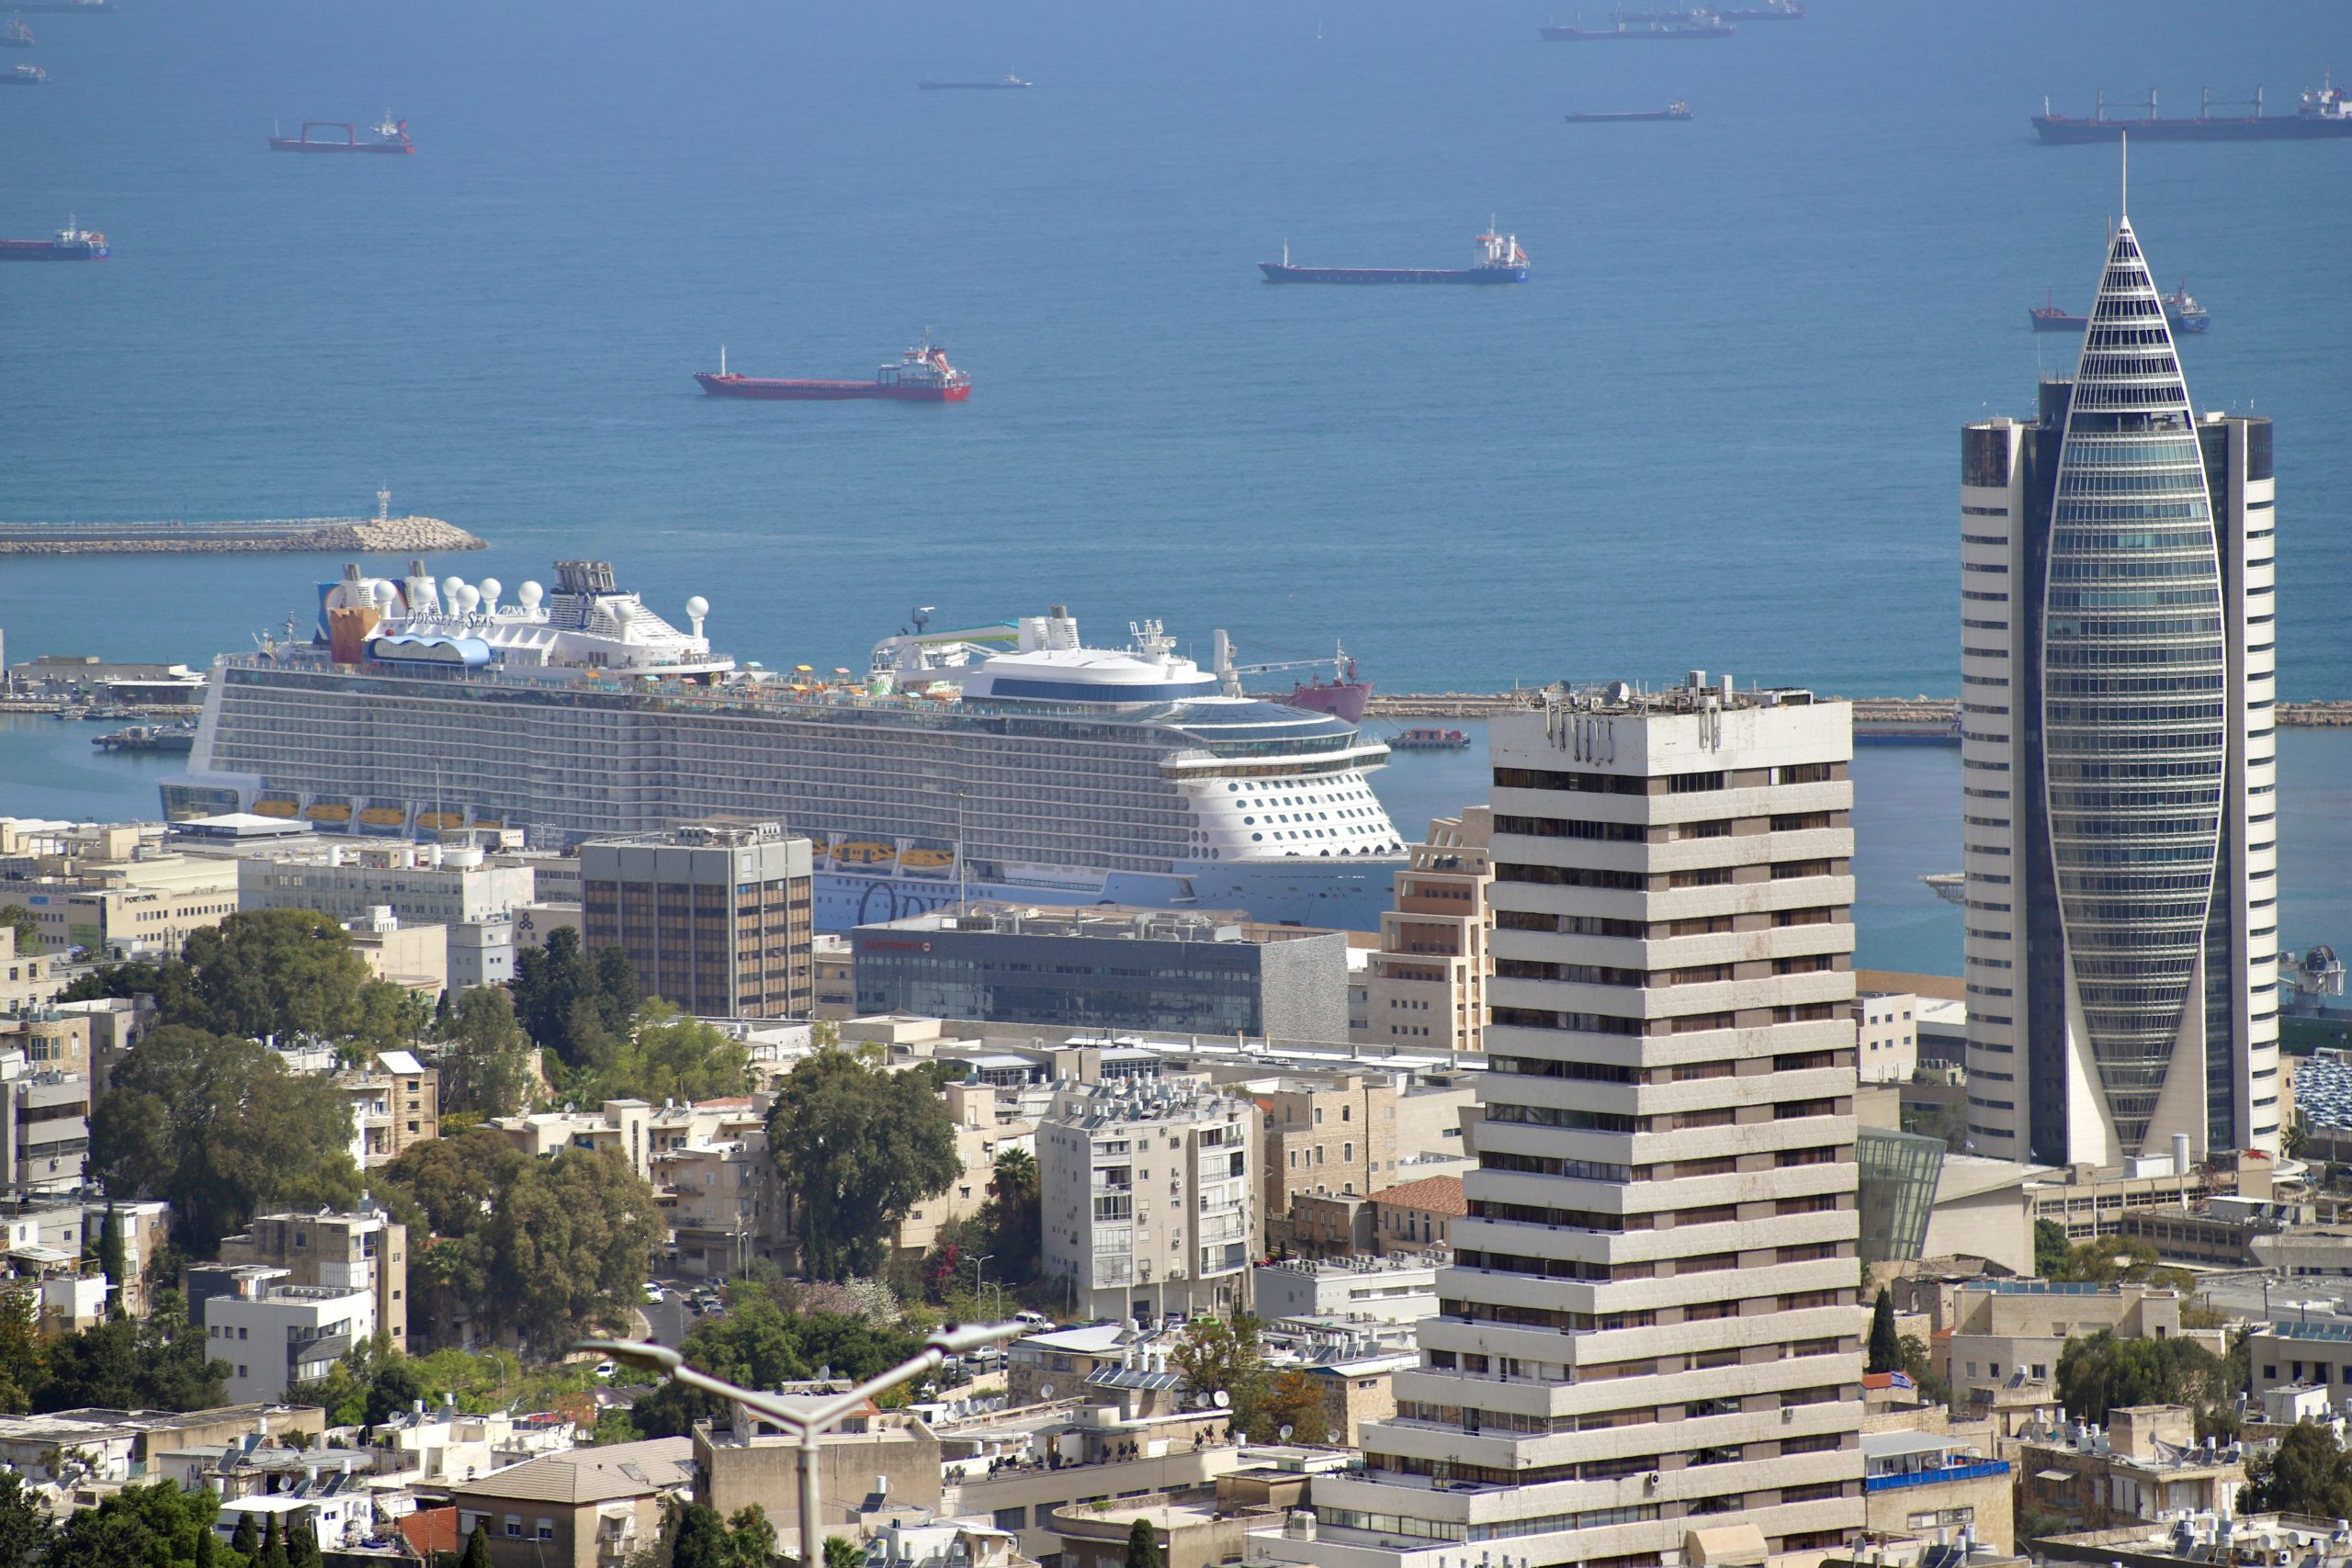 Royal Caribbean's Odyssey Of The Seas Arrives to Haifa for its Maiden Cruise